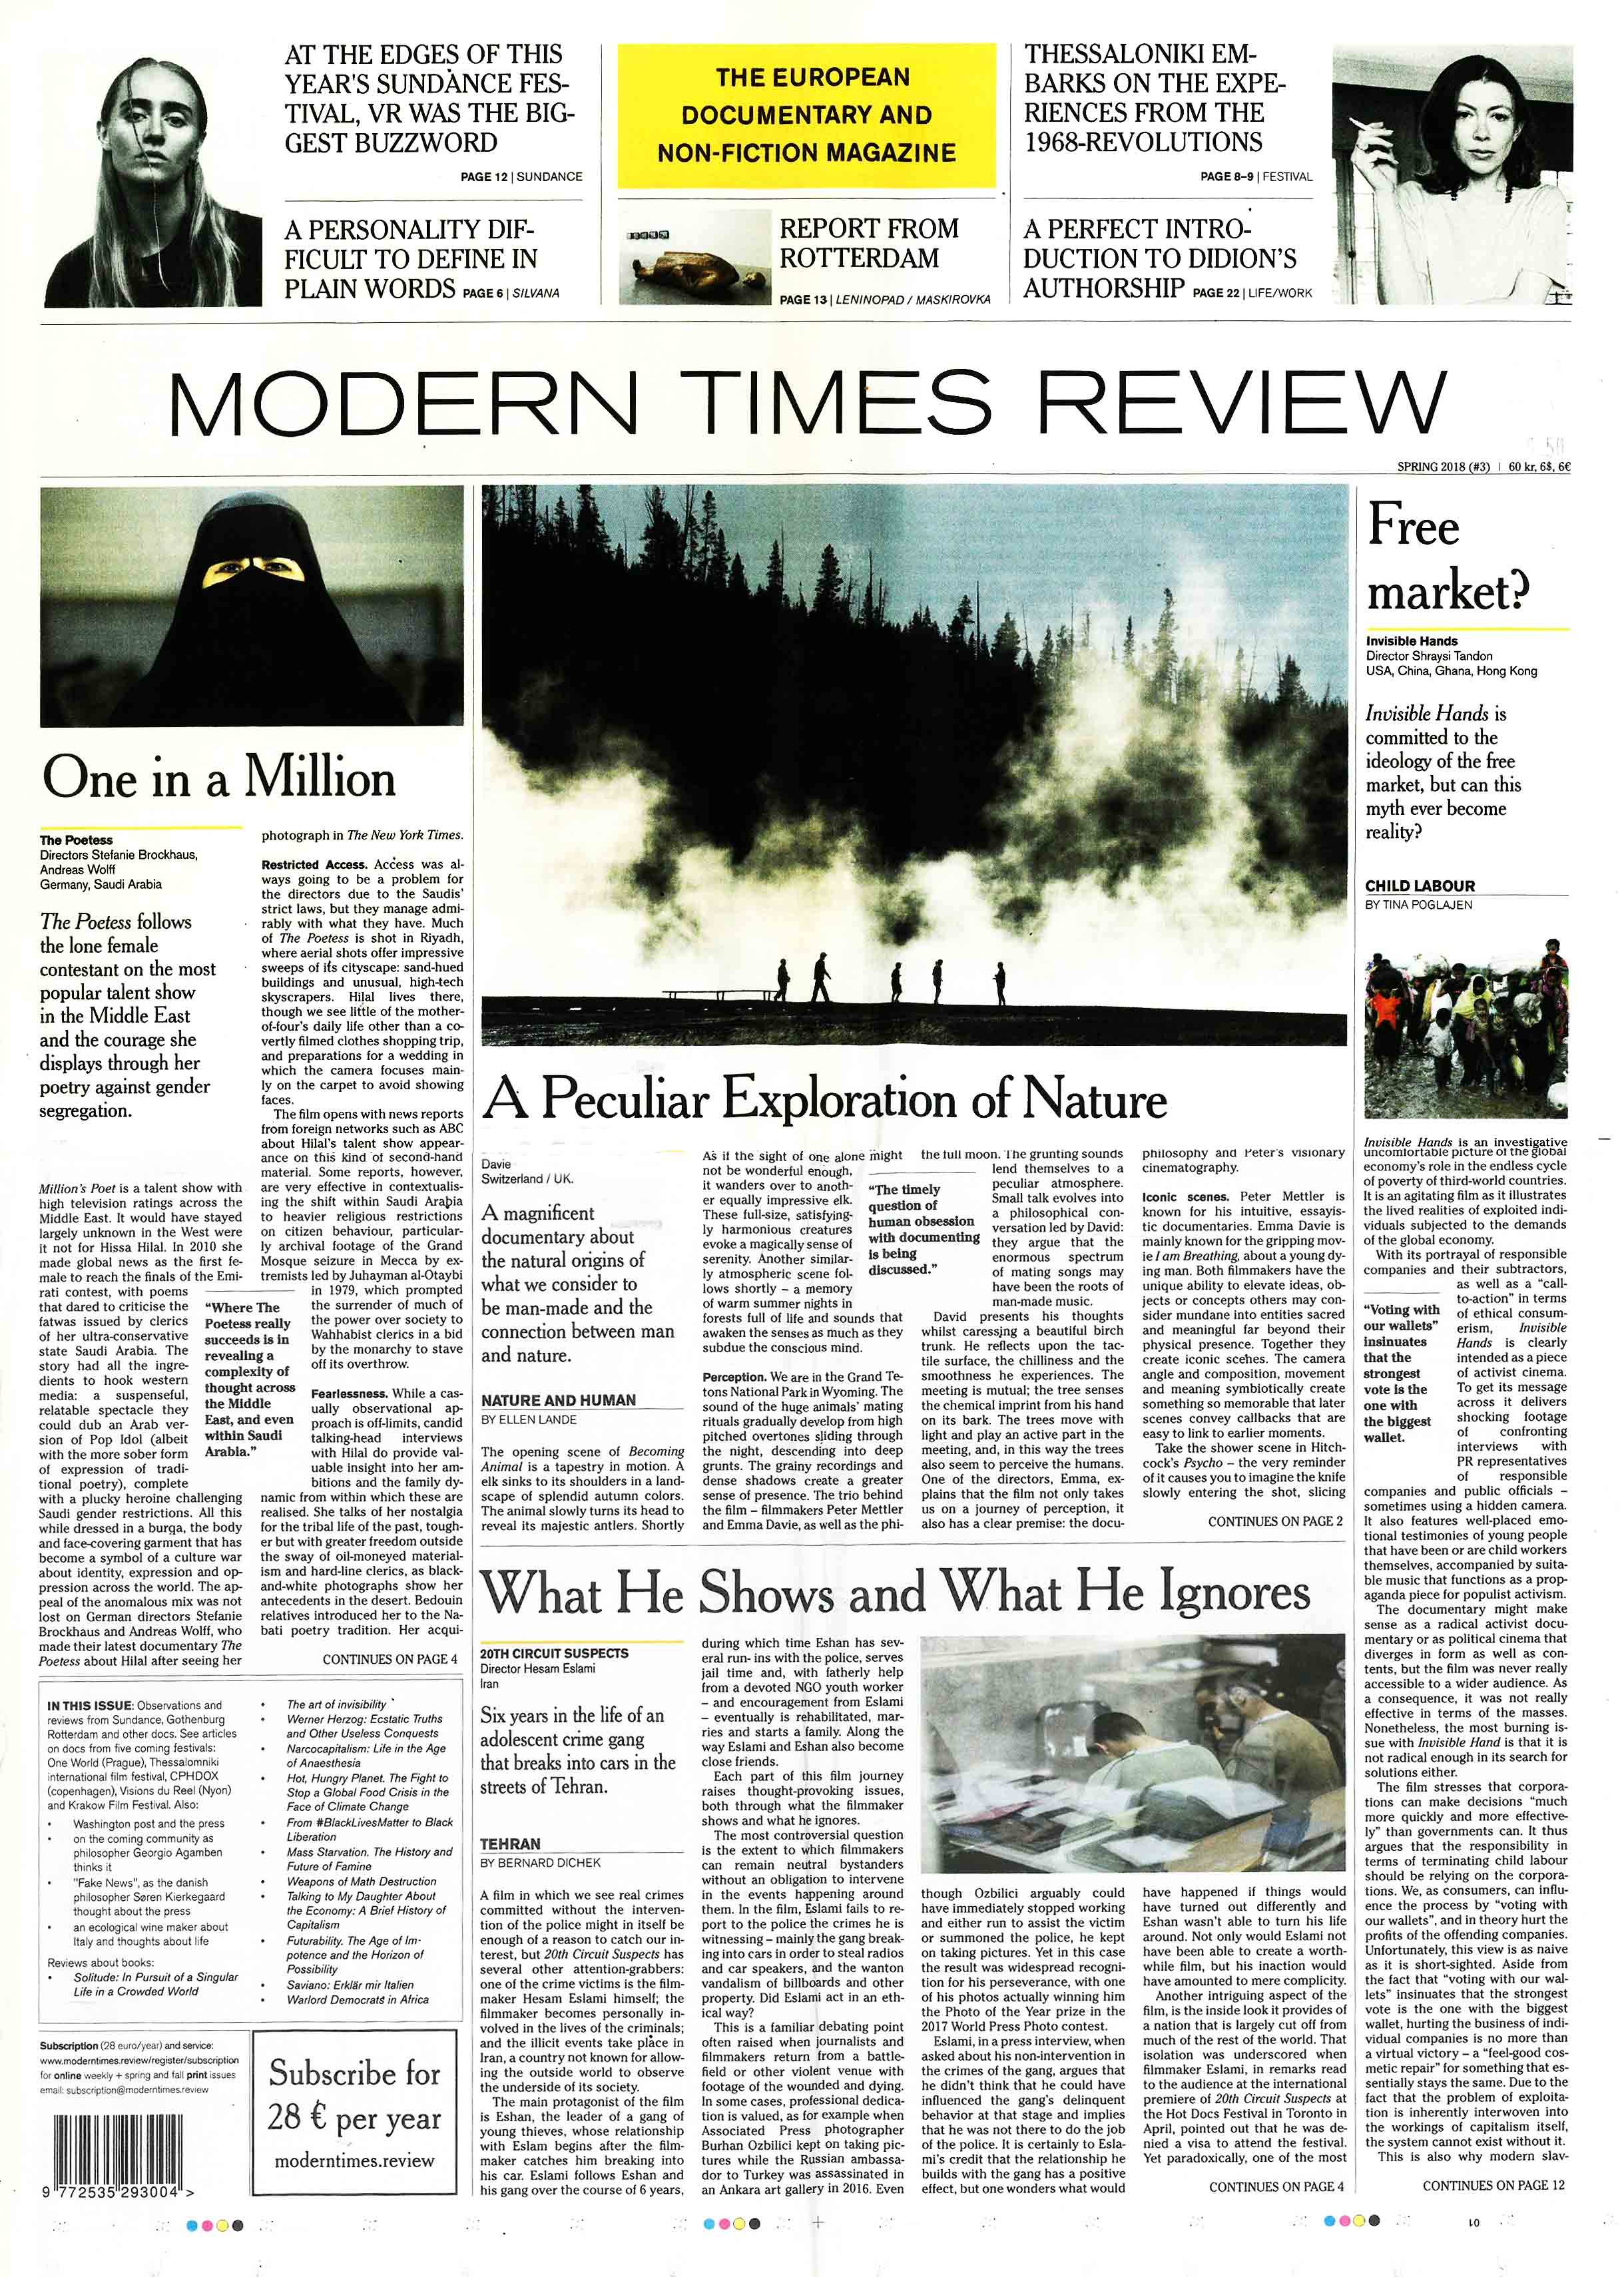 Buy Modern Times Review issue 3